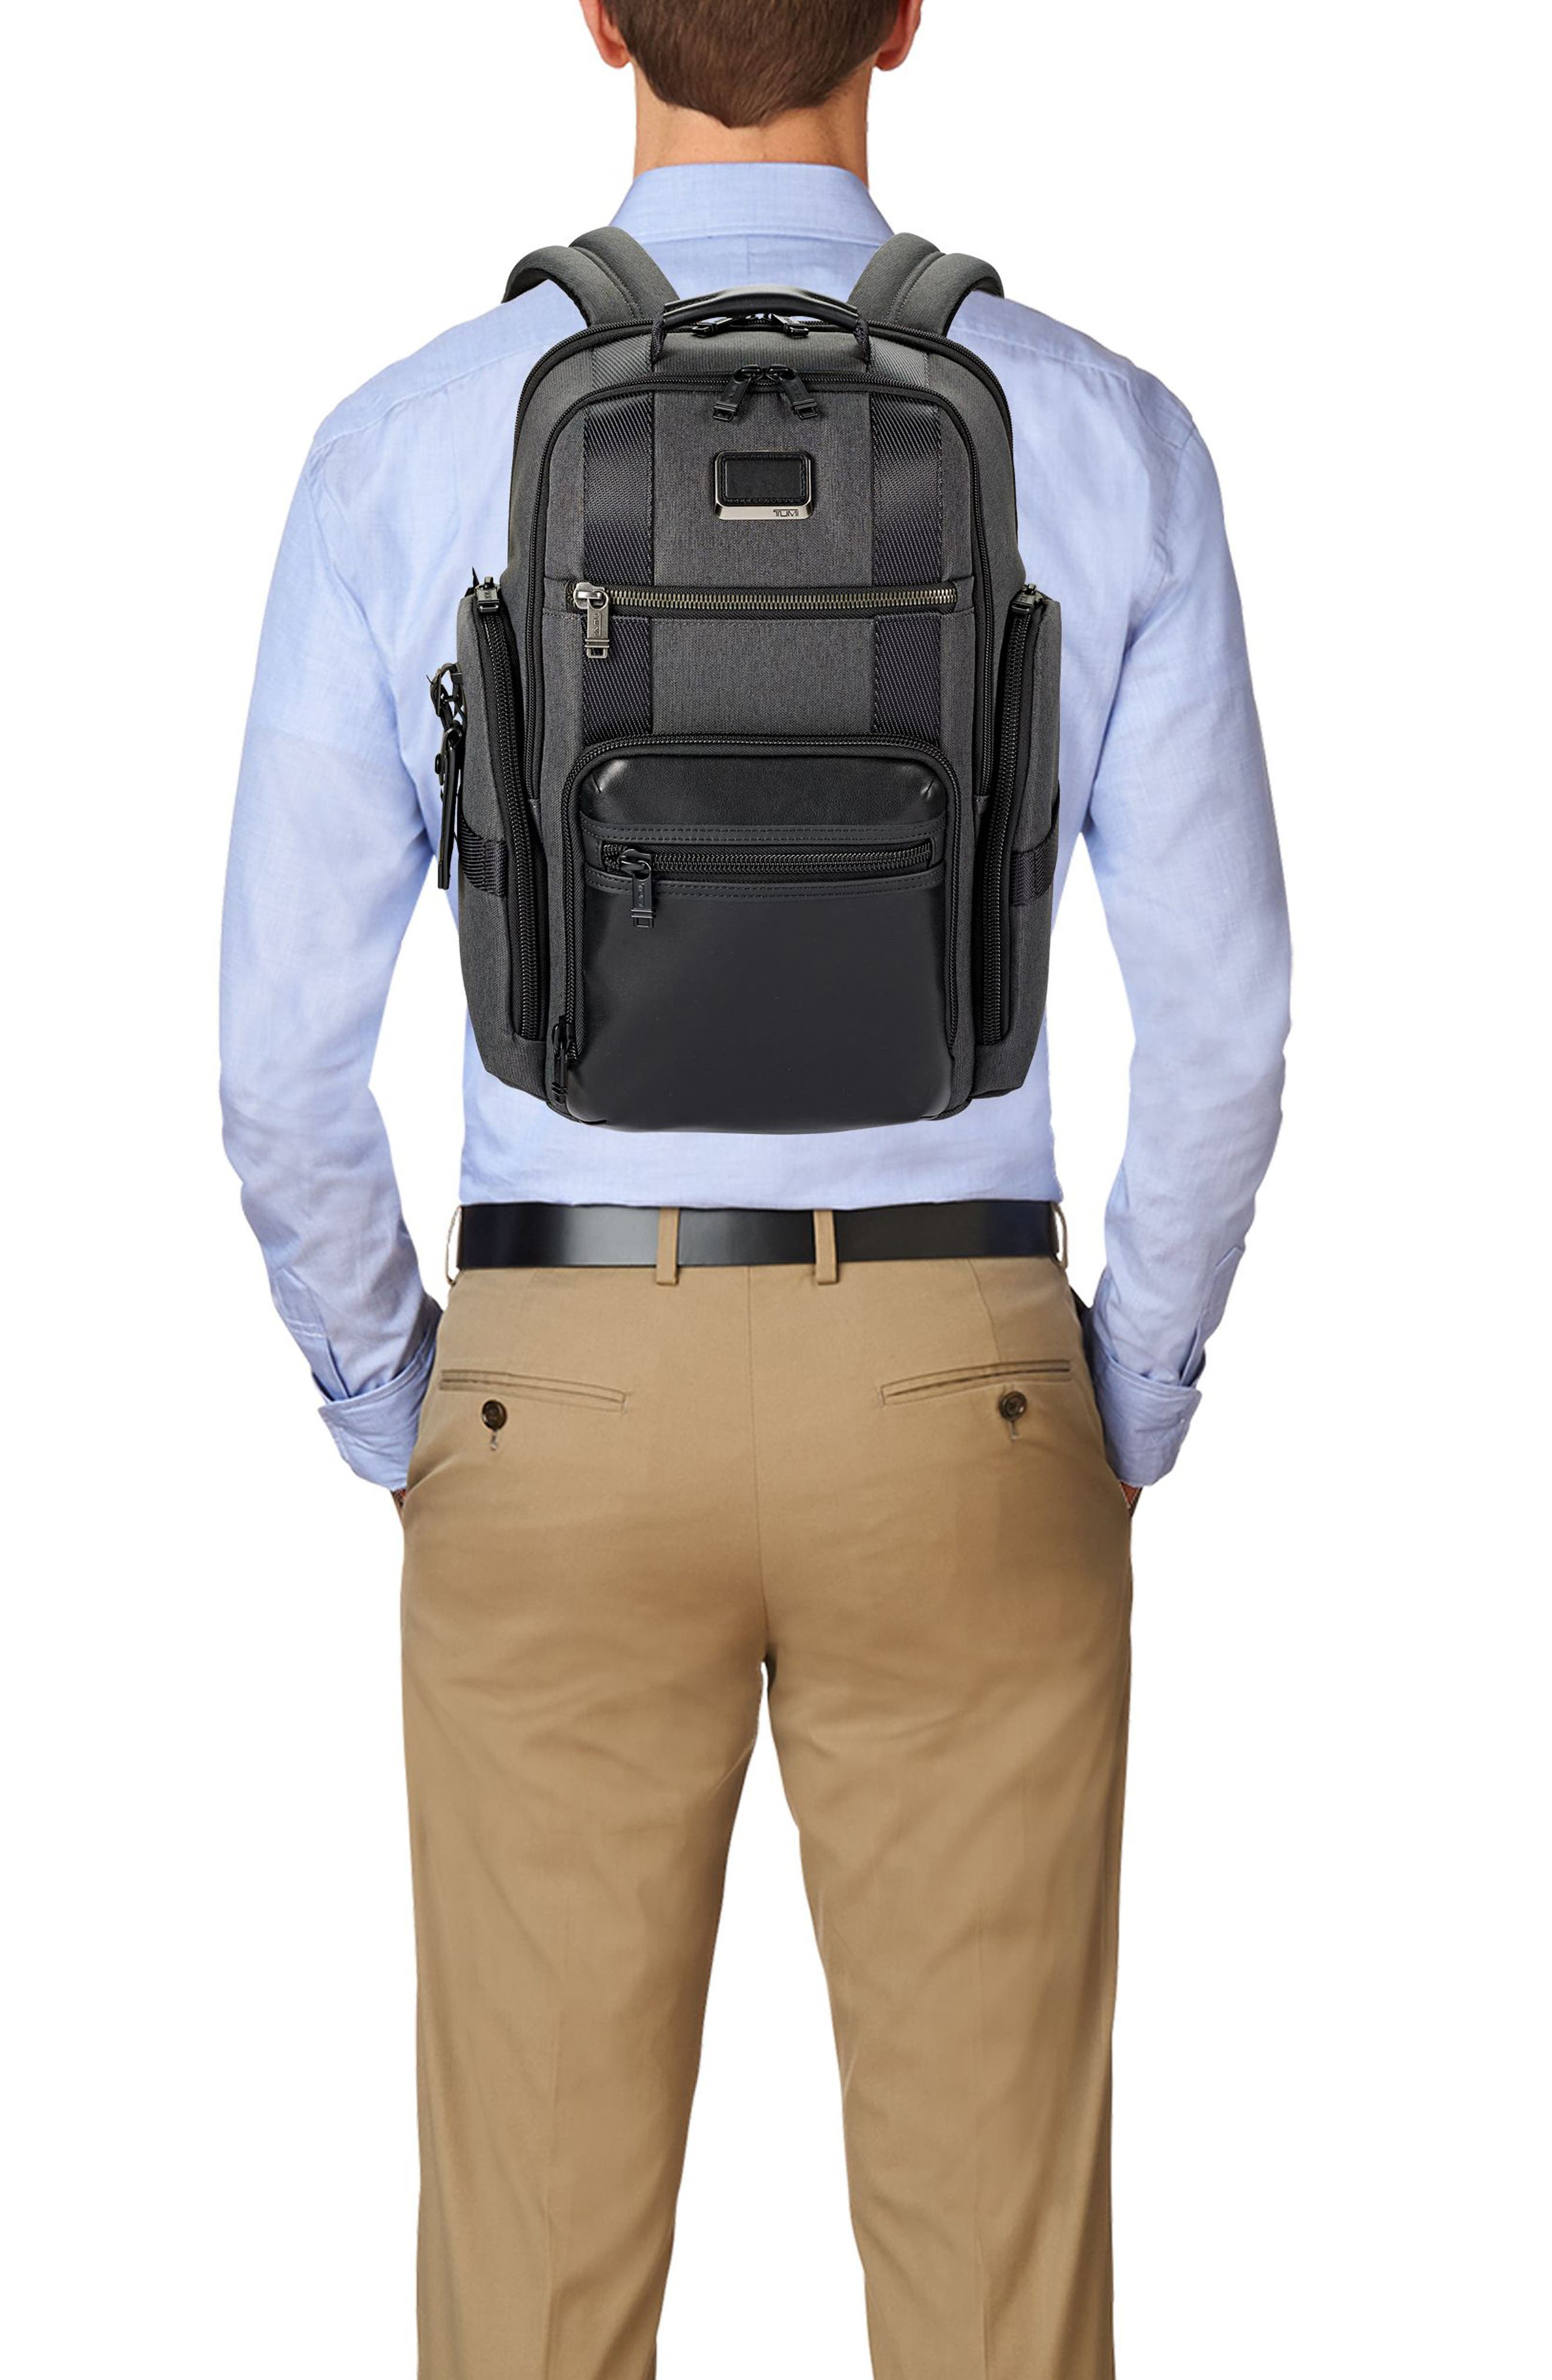 Alpha Bravo - Sheppard Deluxe Backpack,                             Alternate thumbnail 6, color,                             ANTHRACITE